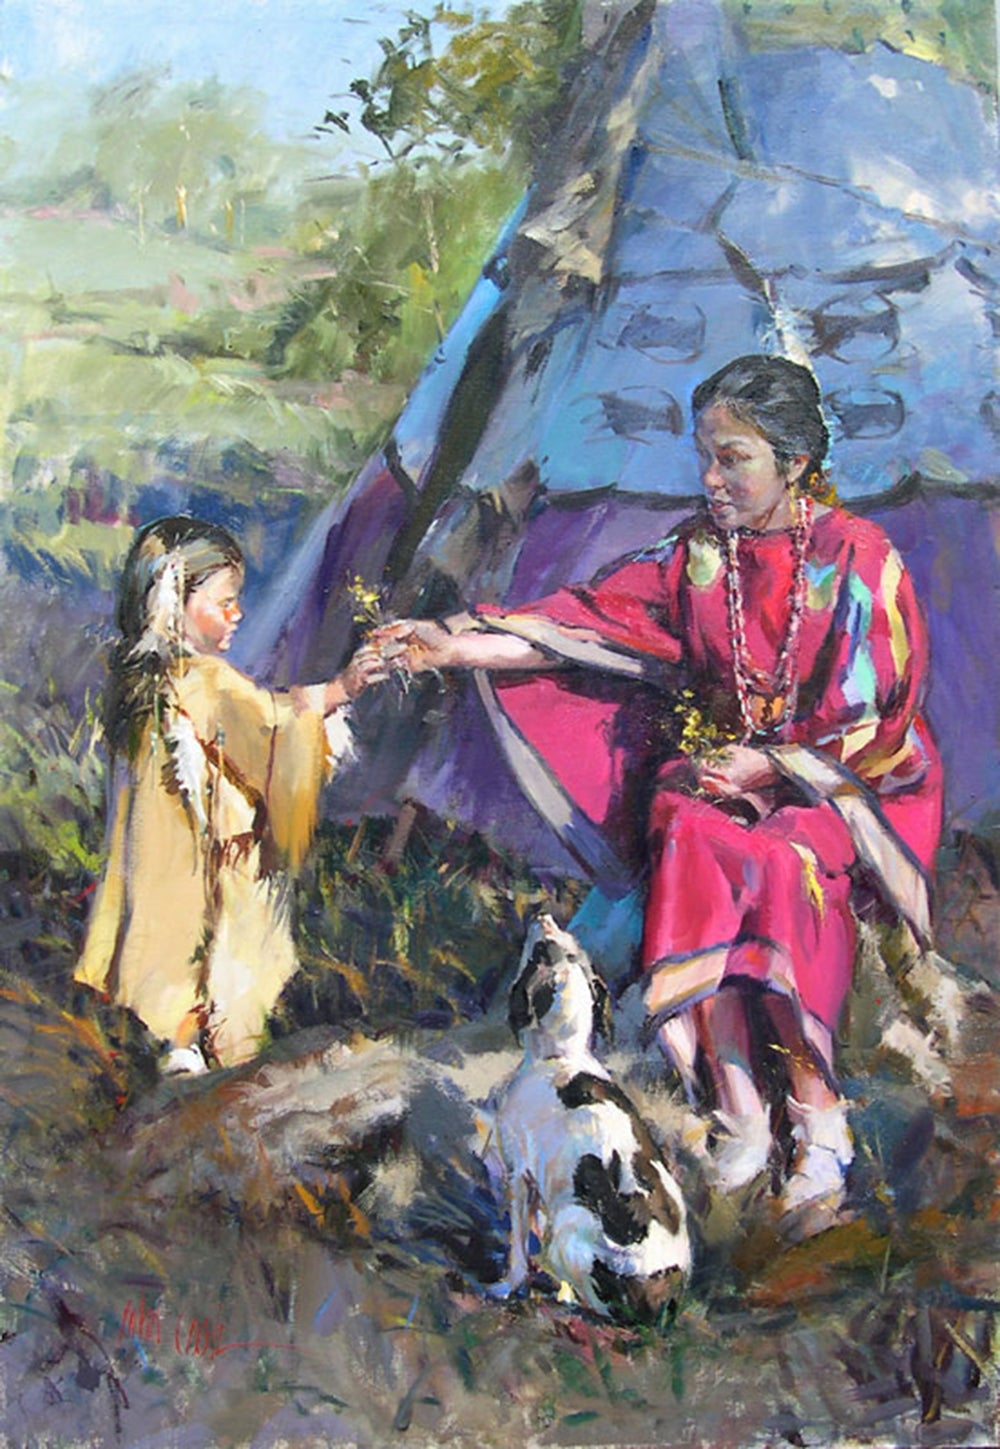 """The Gentle Gesture"", John Cook, Oil on Canvas, Impressionism, Native American"